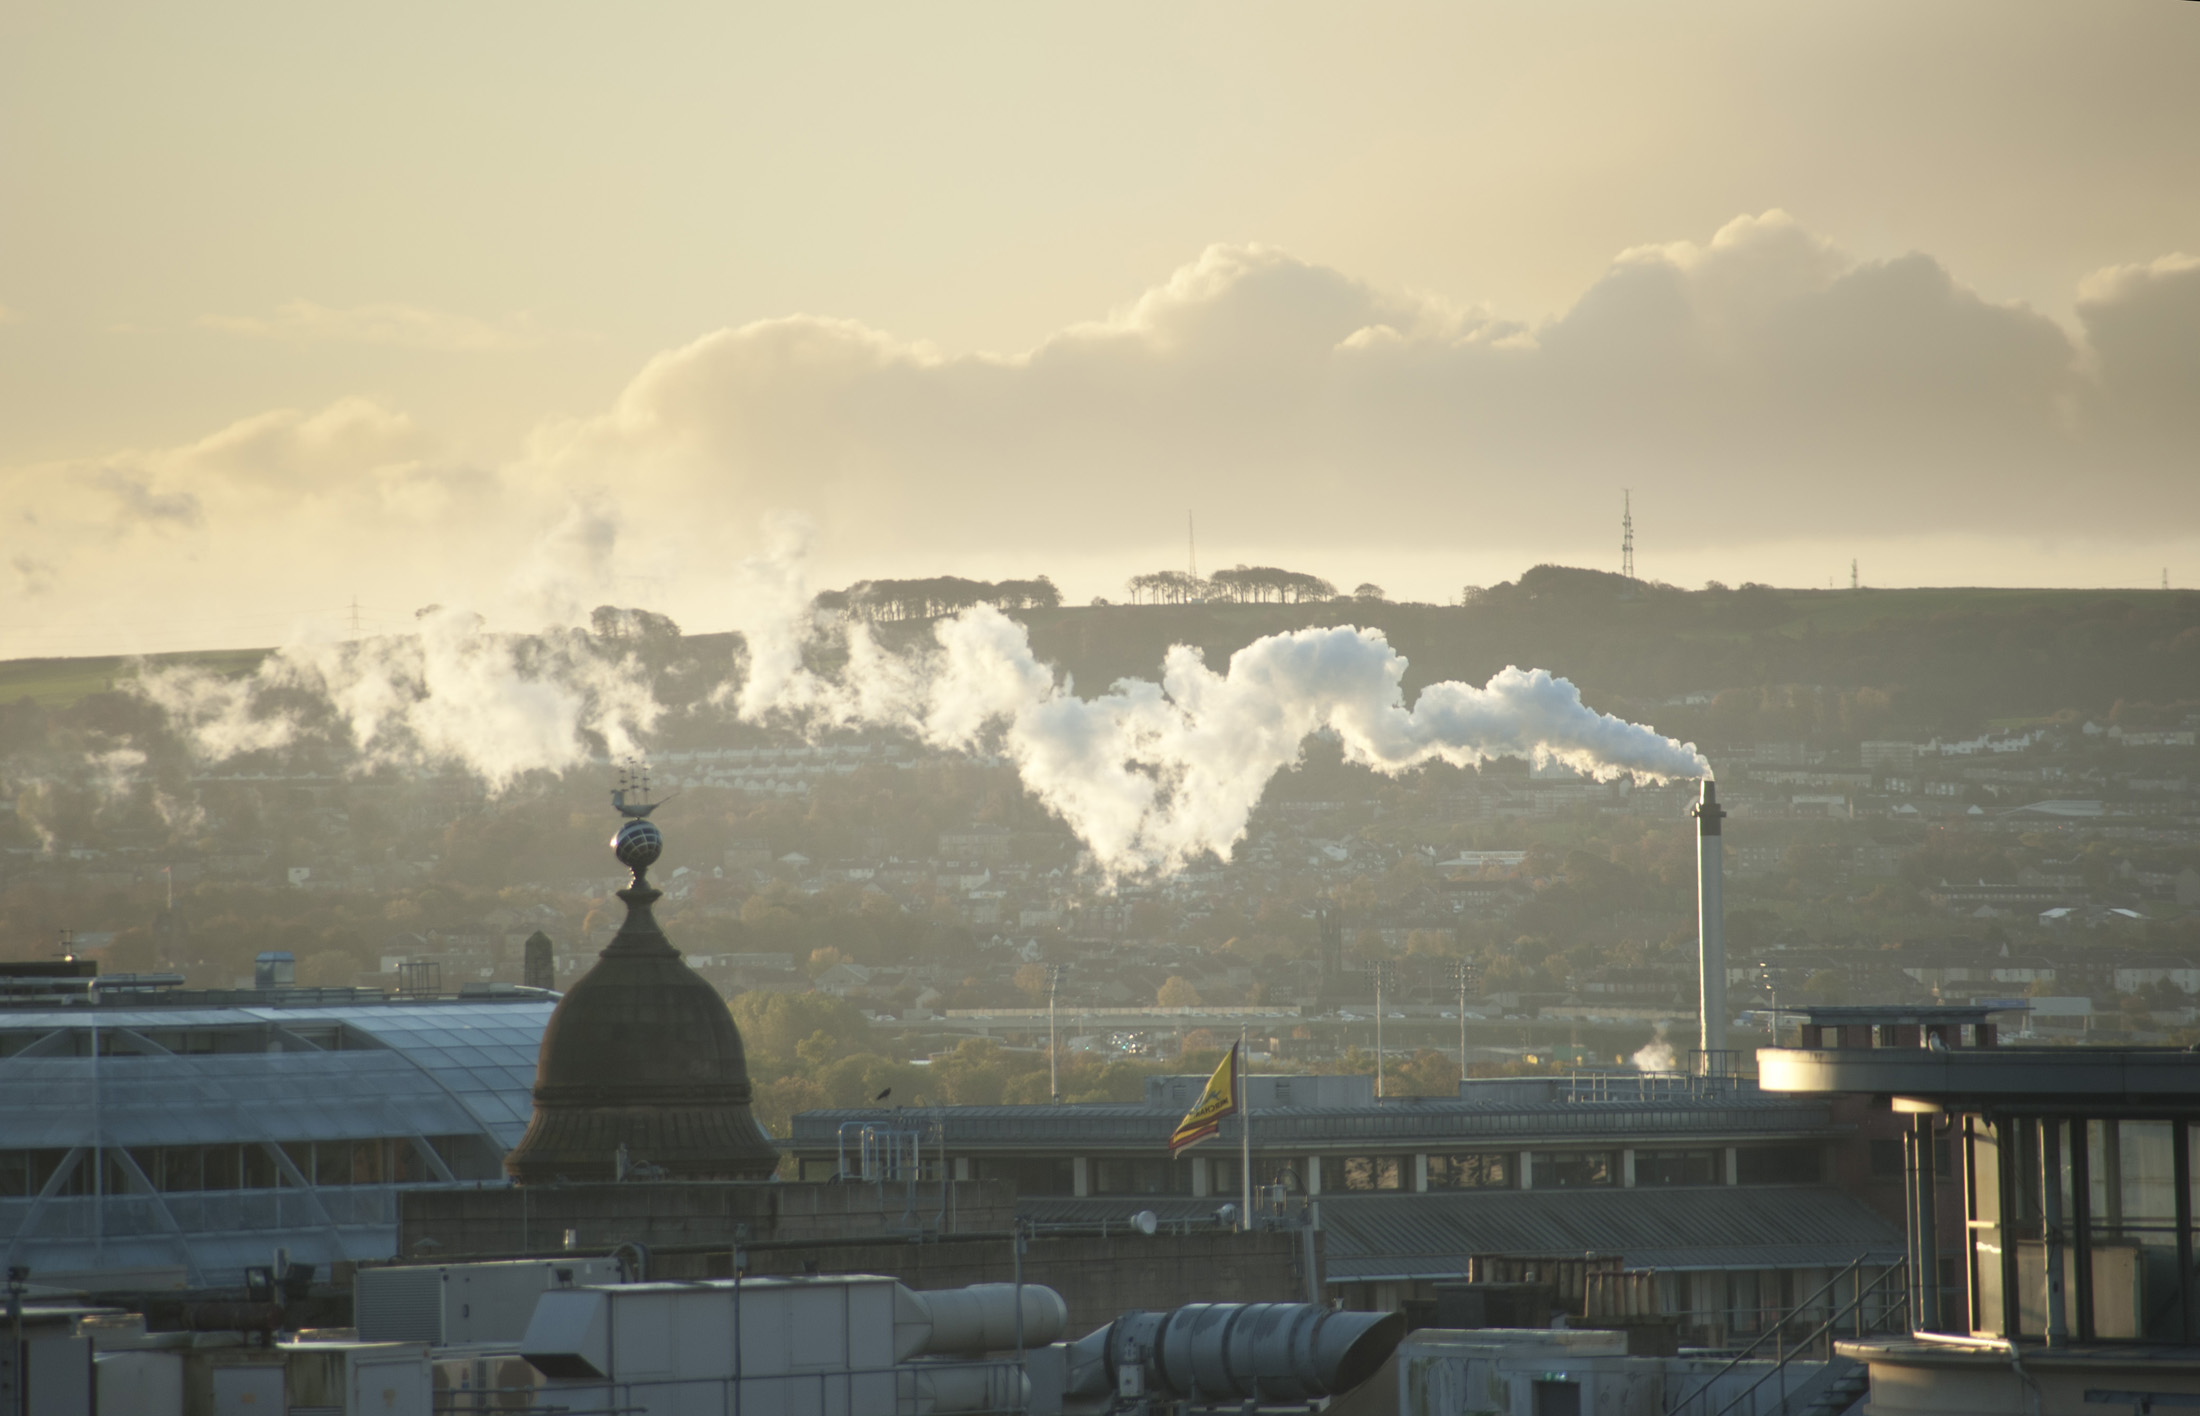 Industrial chimney belching smoke in Glasgow as it wafts across a misty smoggy city skyline polluting the atmosphere